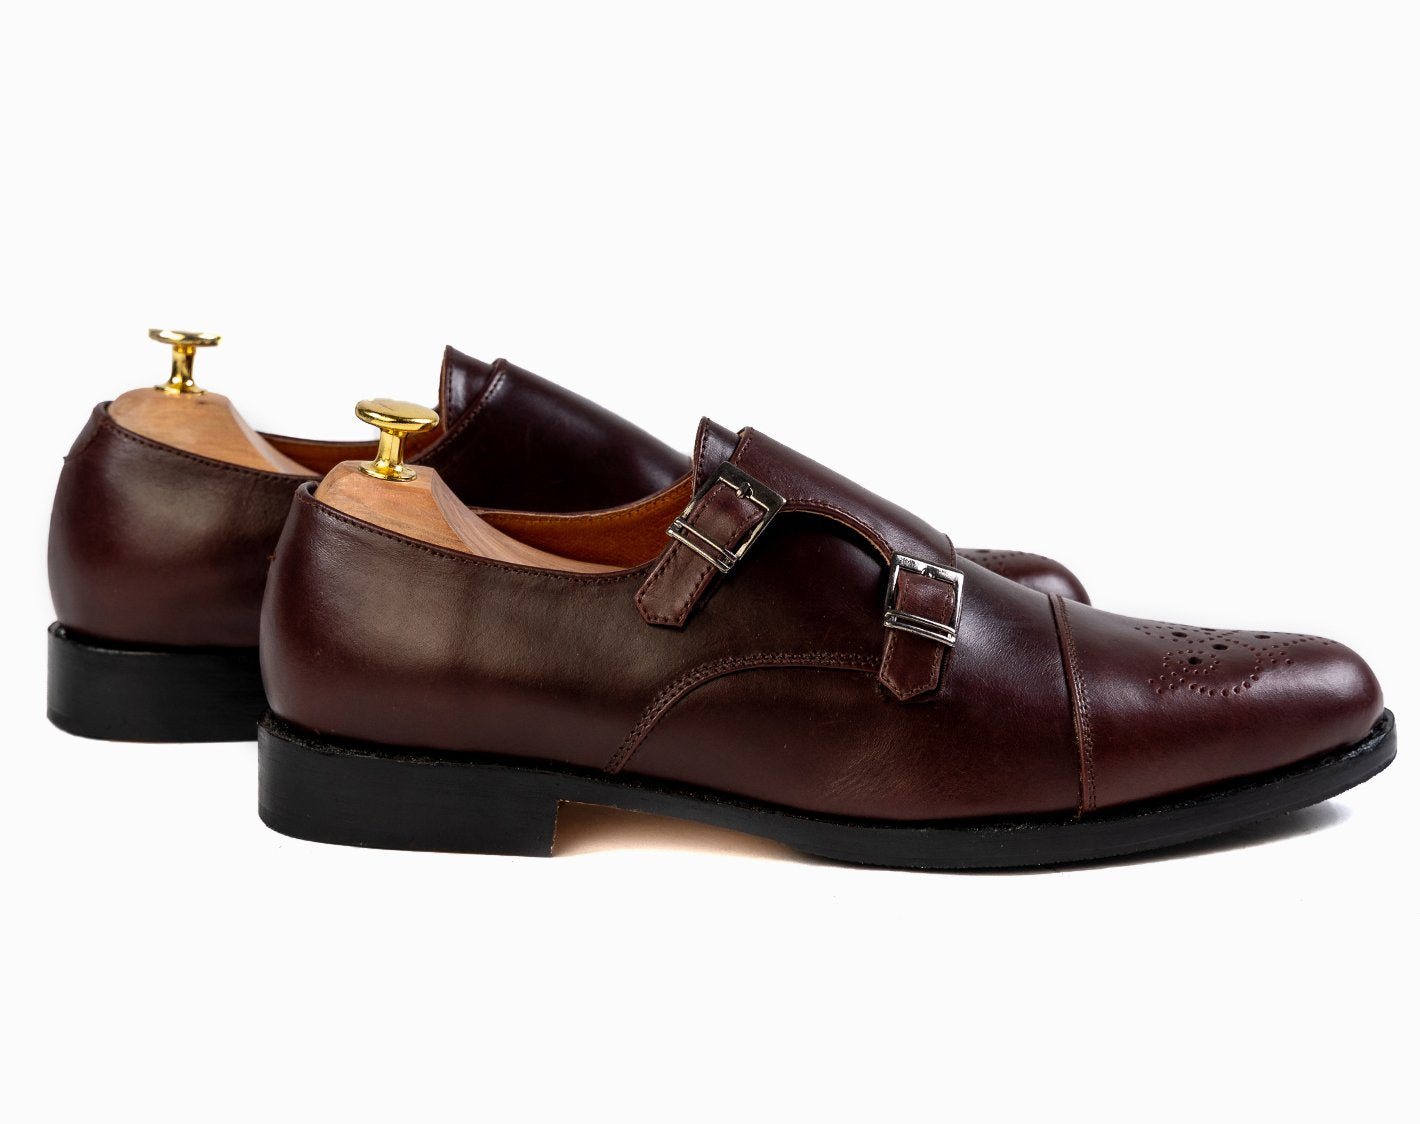 Grand Double Monkstraps - Oxblood Burgundy